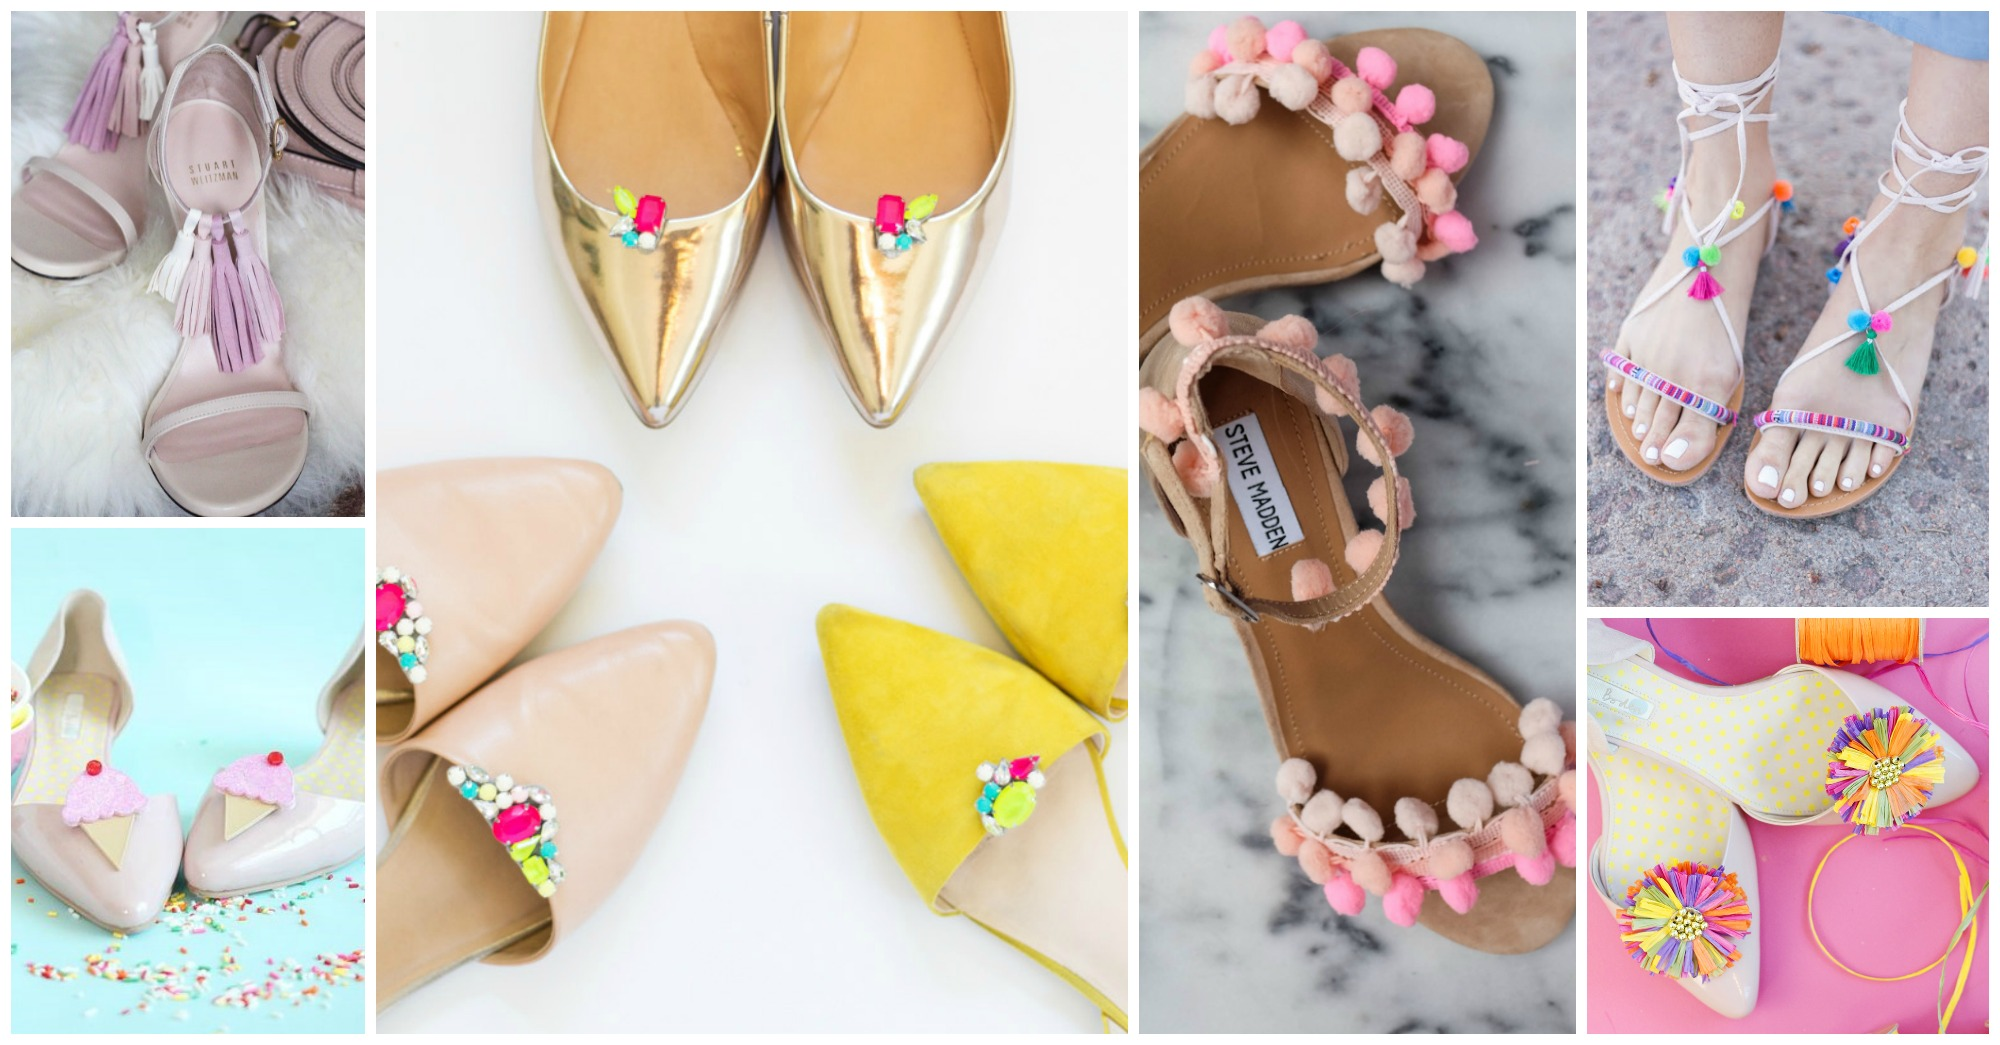 10 Gorgeous Summer Shoes to DIY Right Now